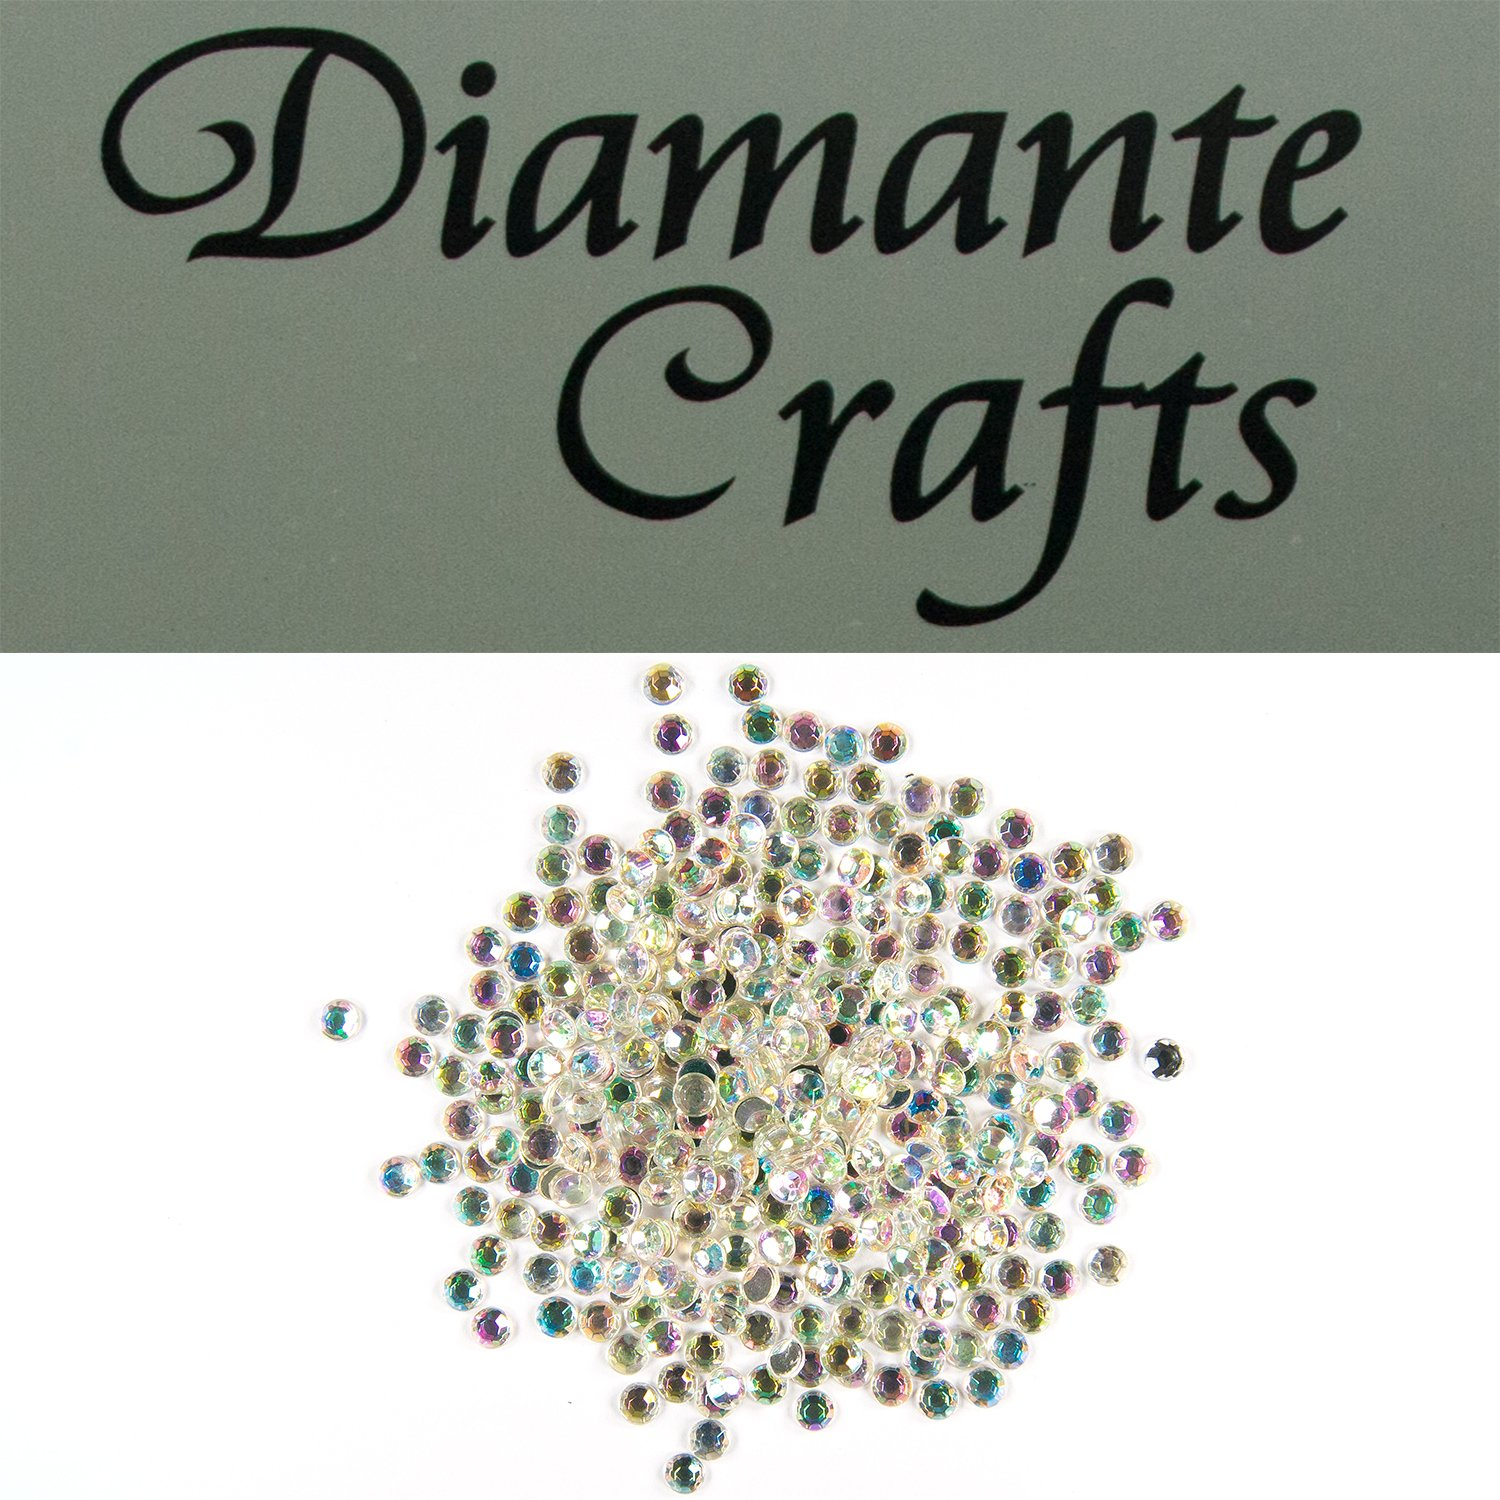 300 x 4mm Clear iridescent AB Round Diamante Loose Flat Back Rhinestone Gems created exclusively for Diamante Crafts